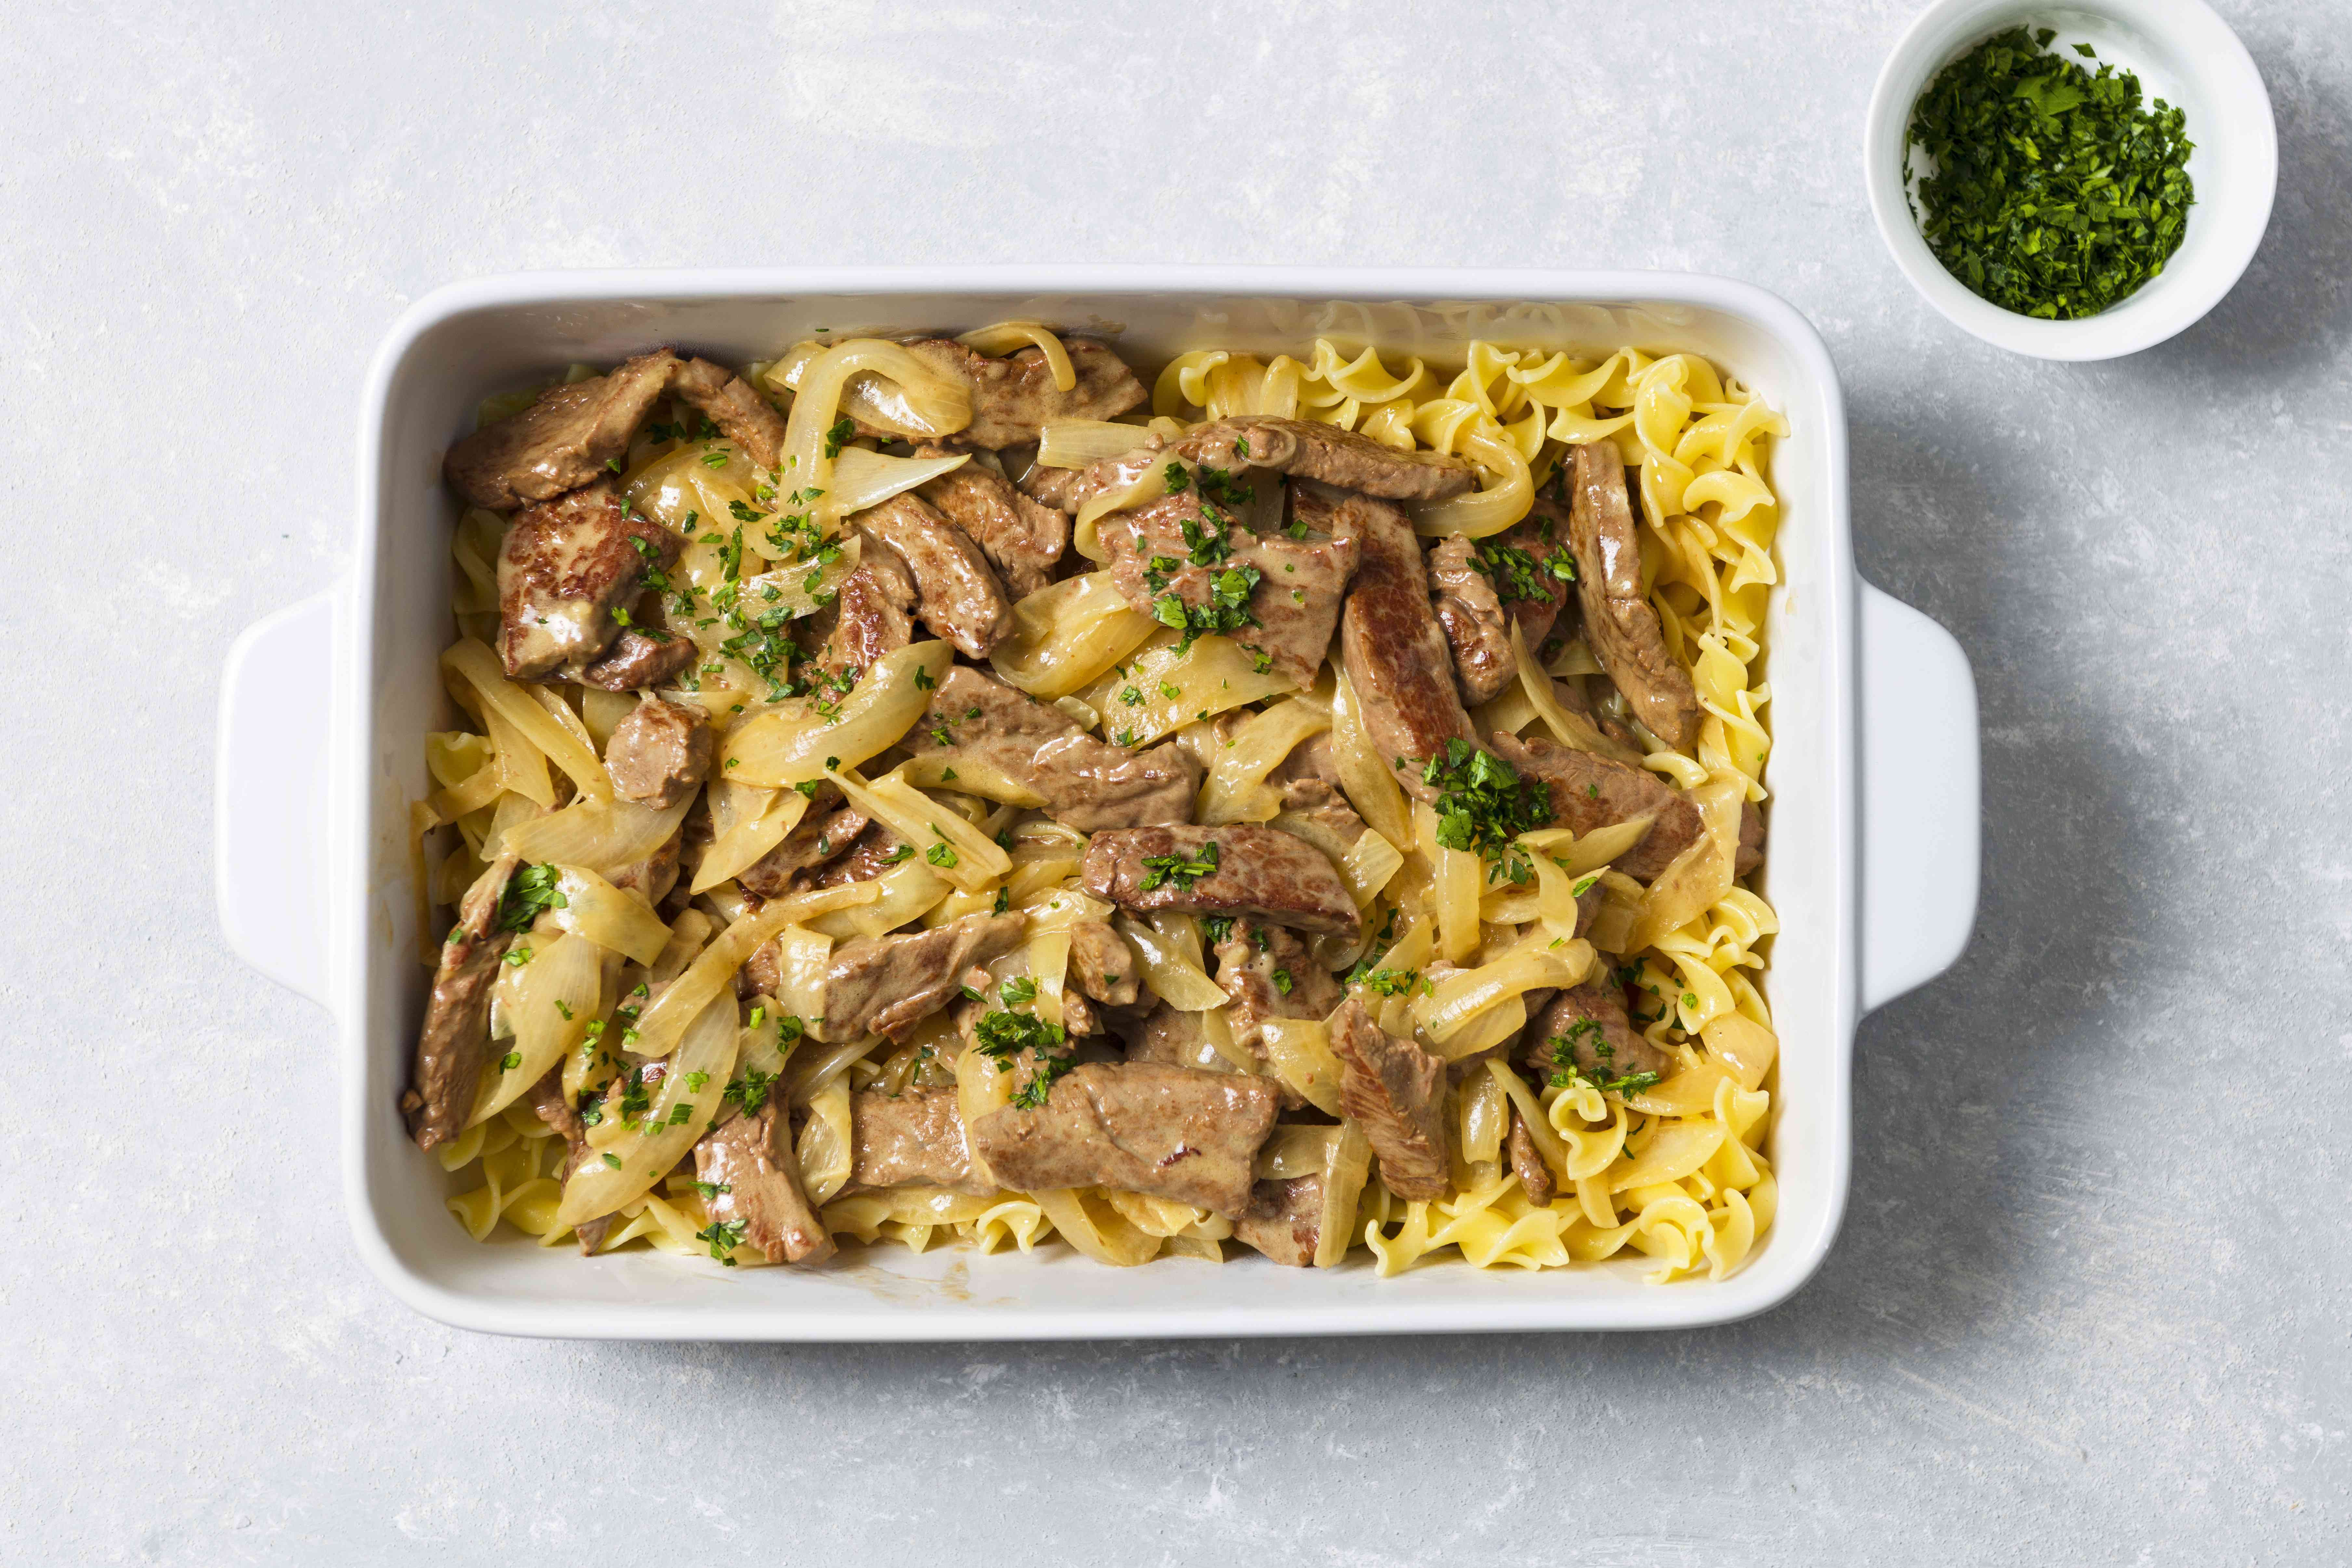 Classic beef stroganoff in a baking dish